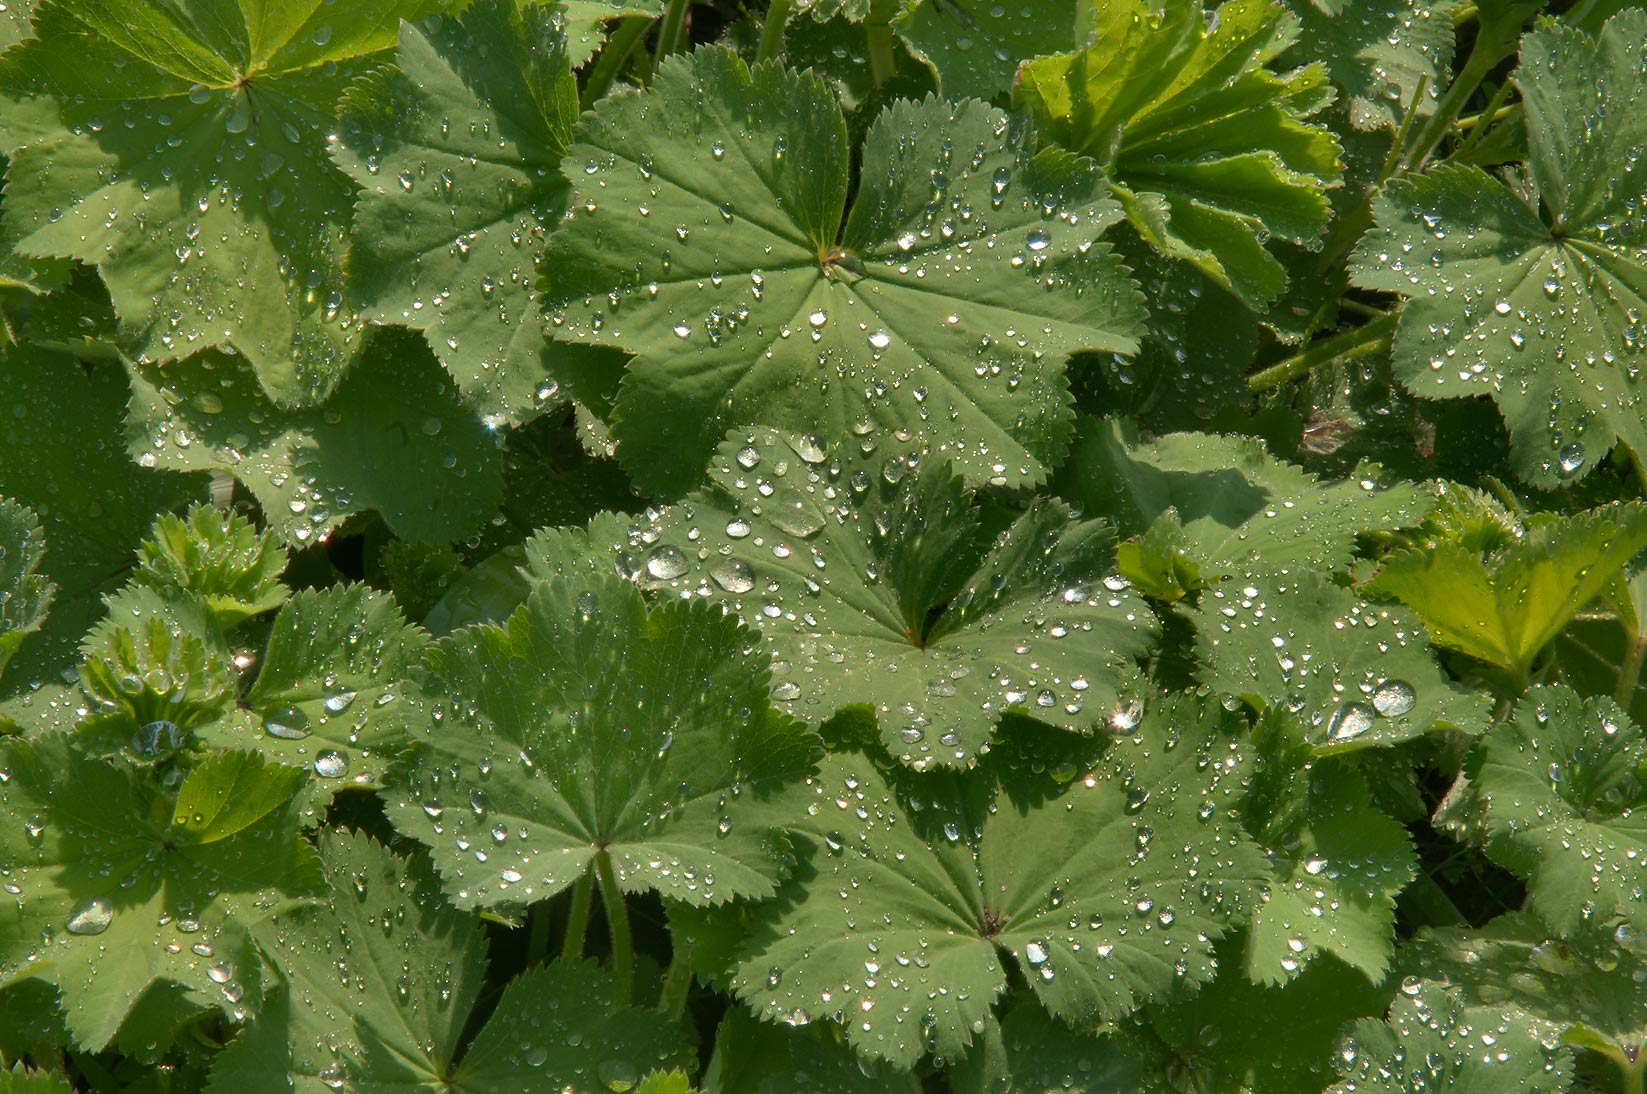 Leaves of Lady's Mantle (Alchemilla vulgaris...Institute. St.Petersburg, Russia